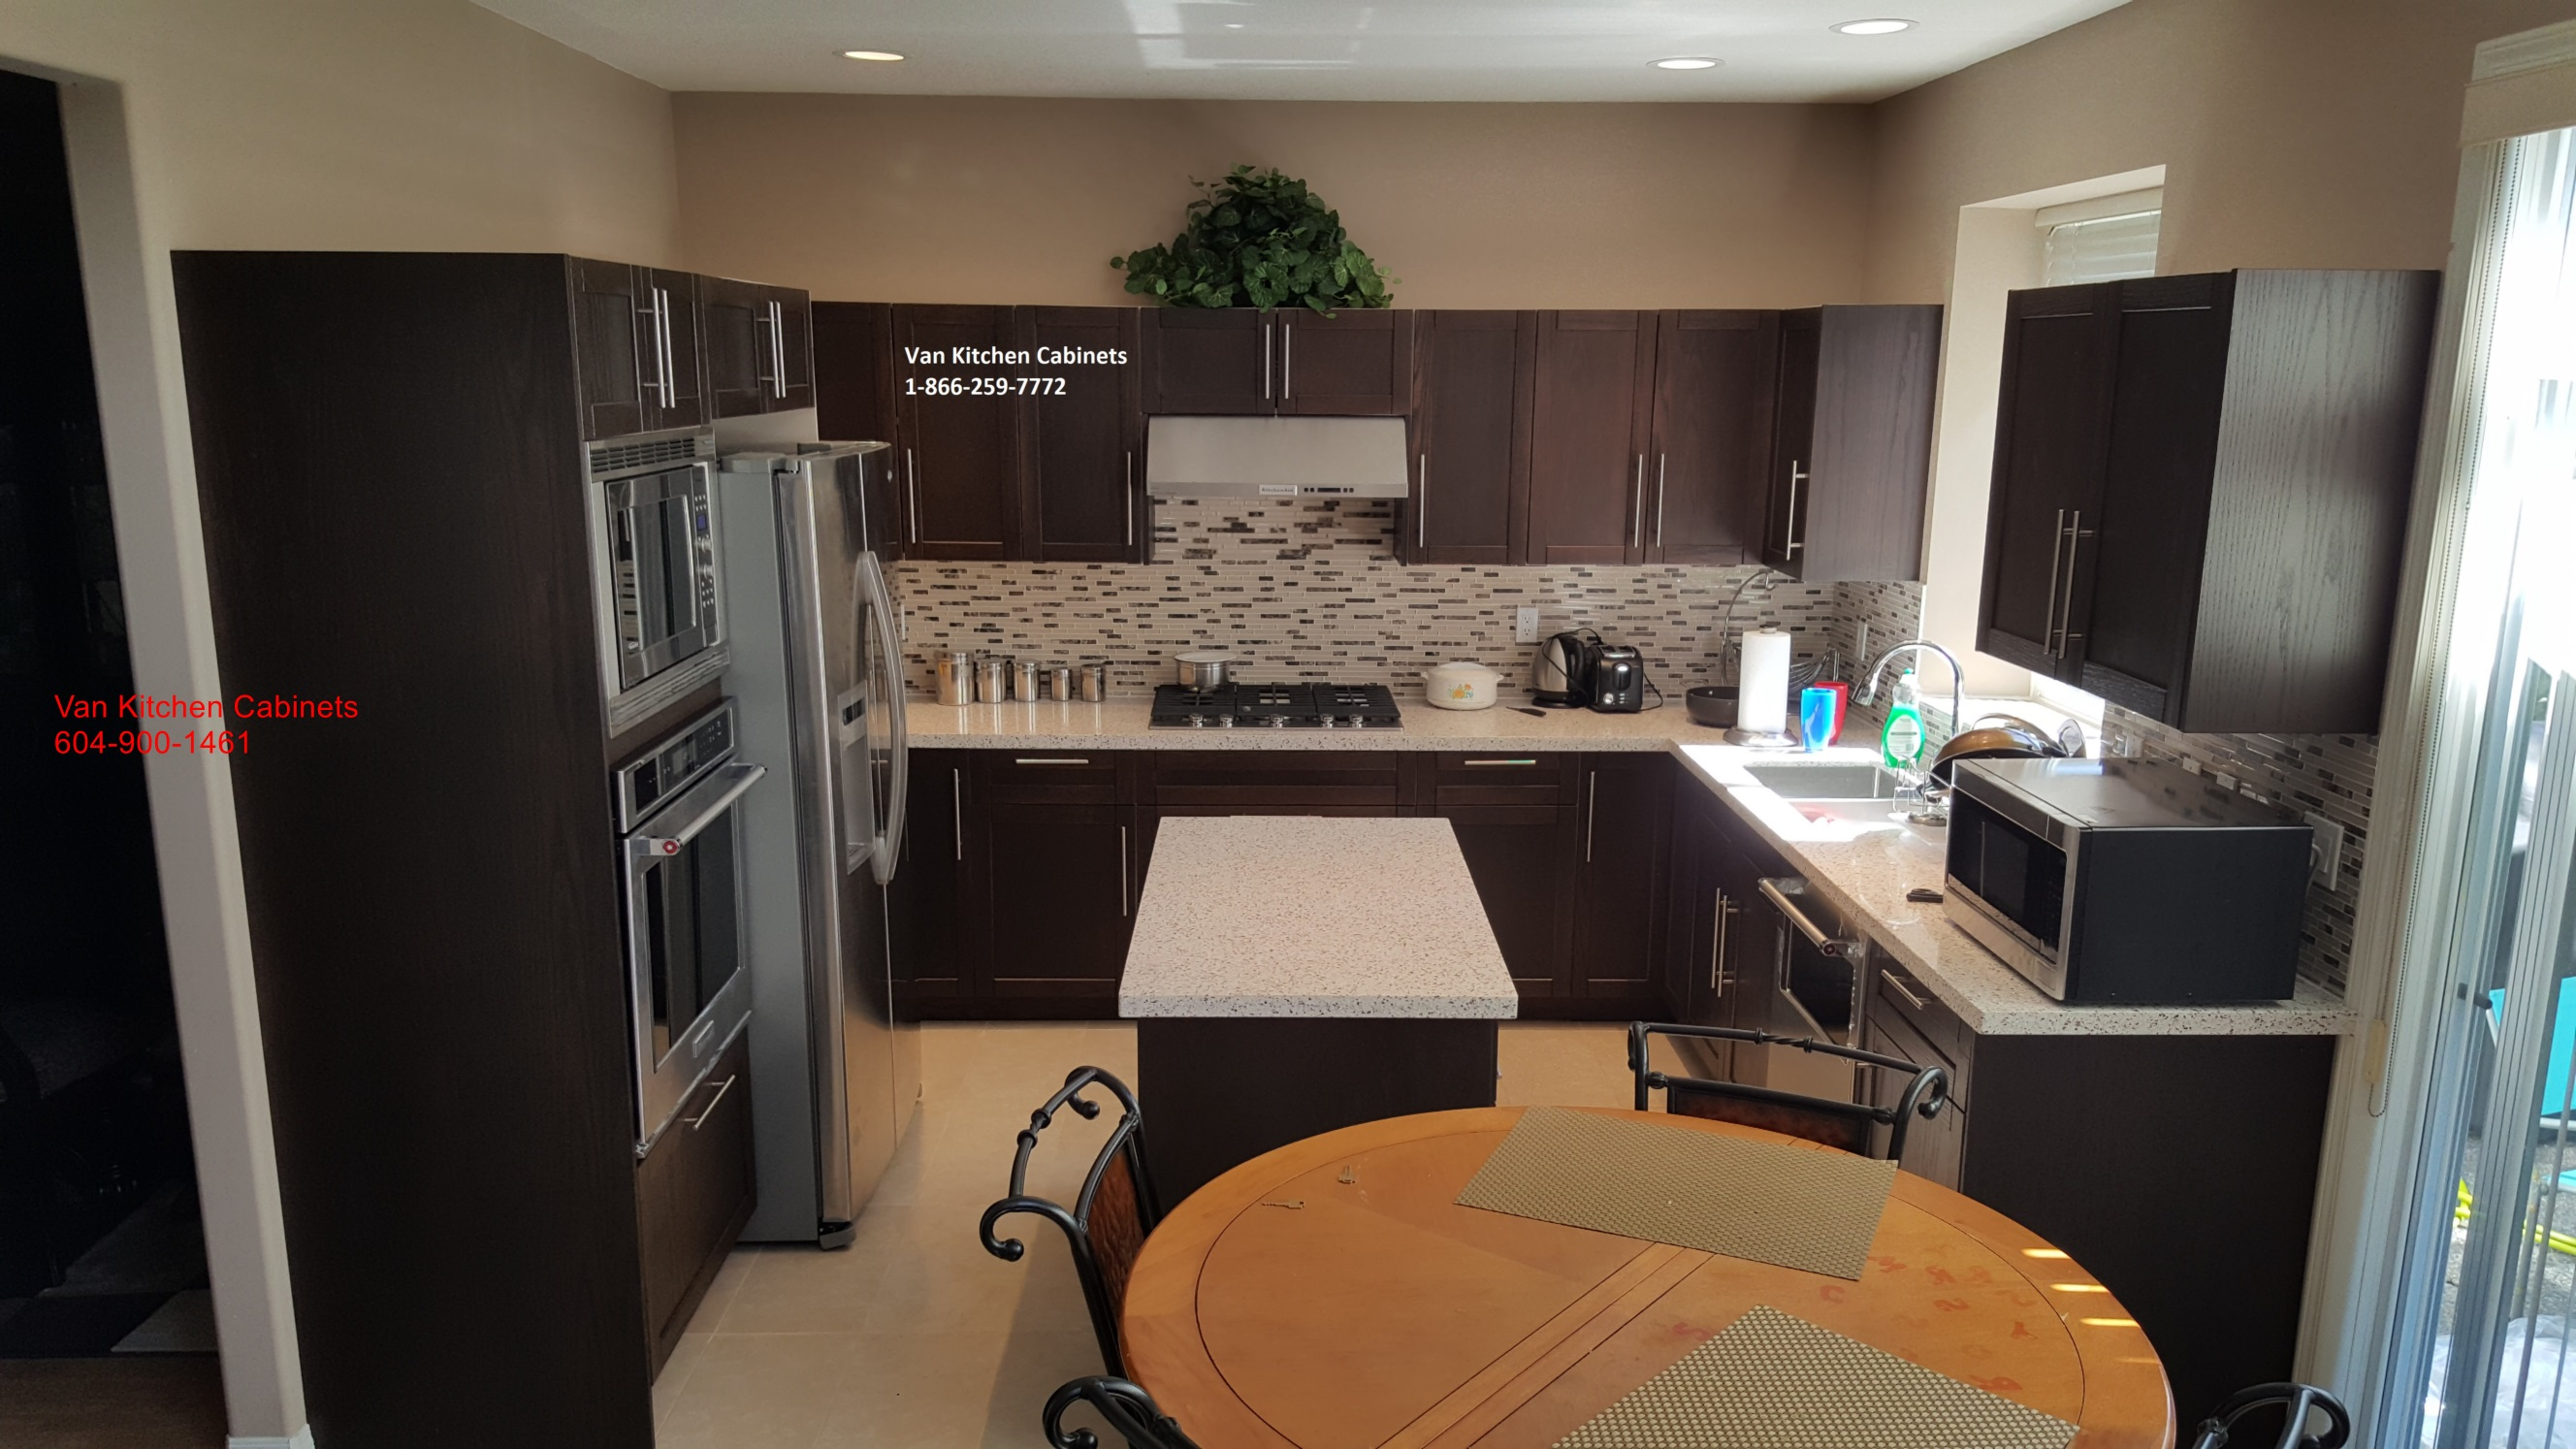 Kitchen Cabinets dark mahogany color